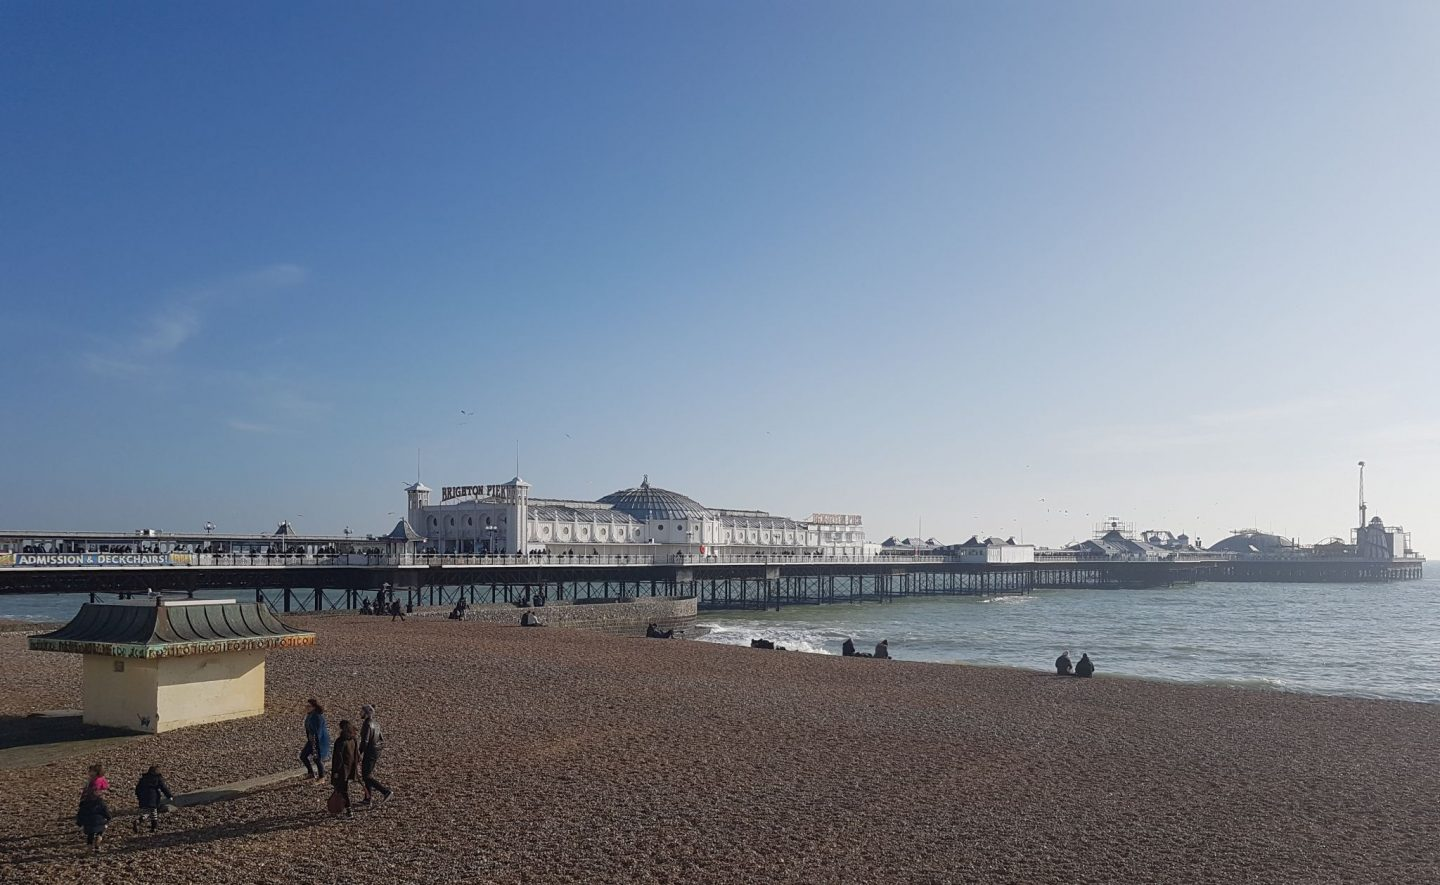 brighton palace pier beach